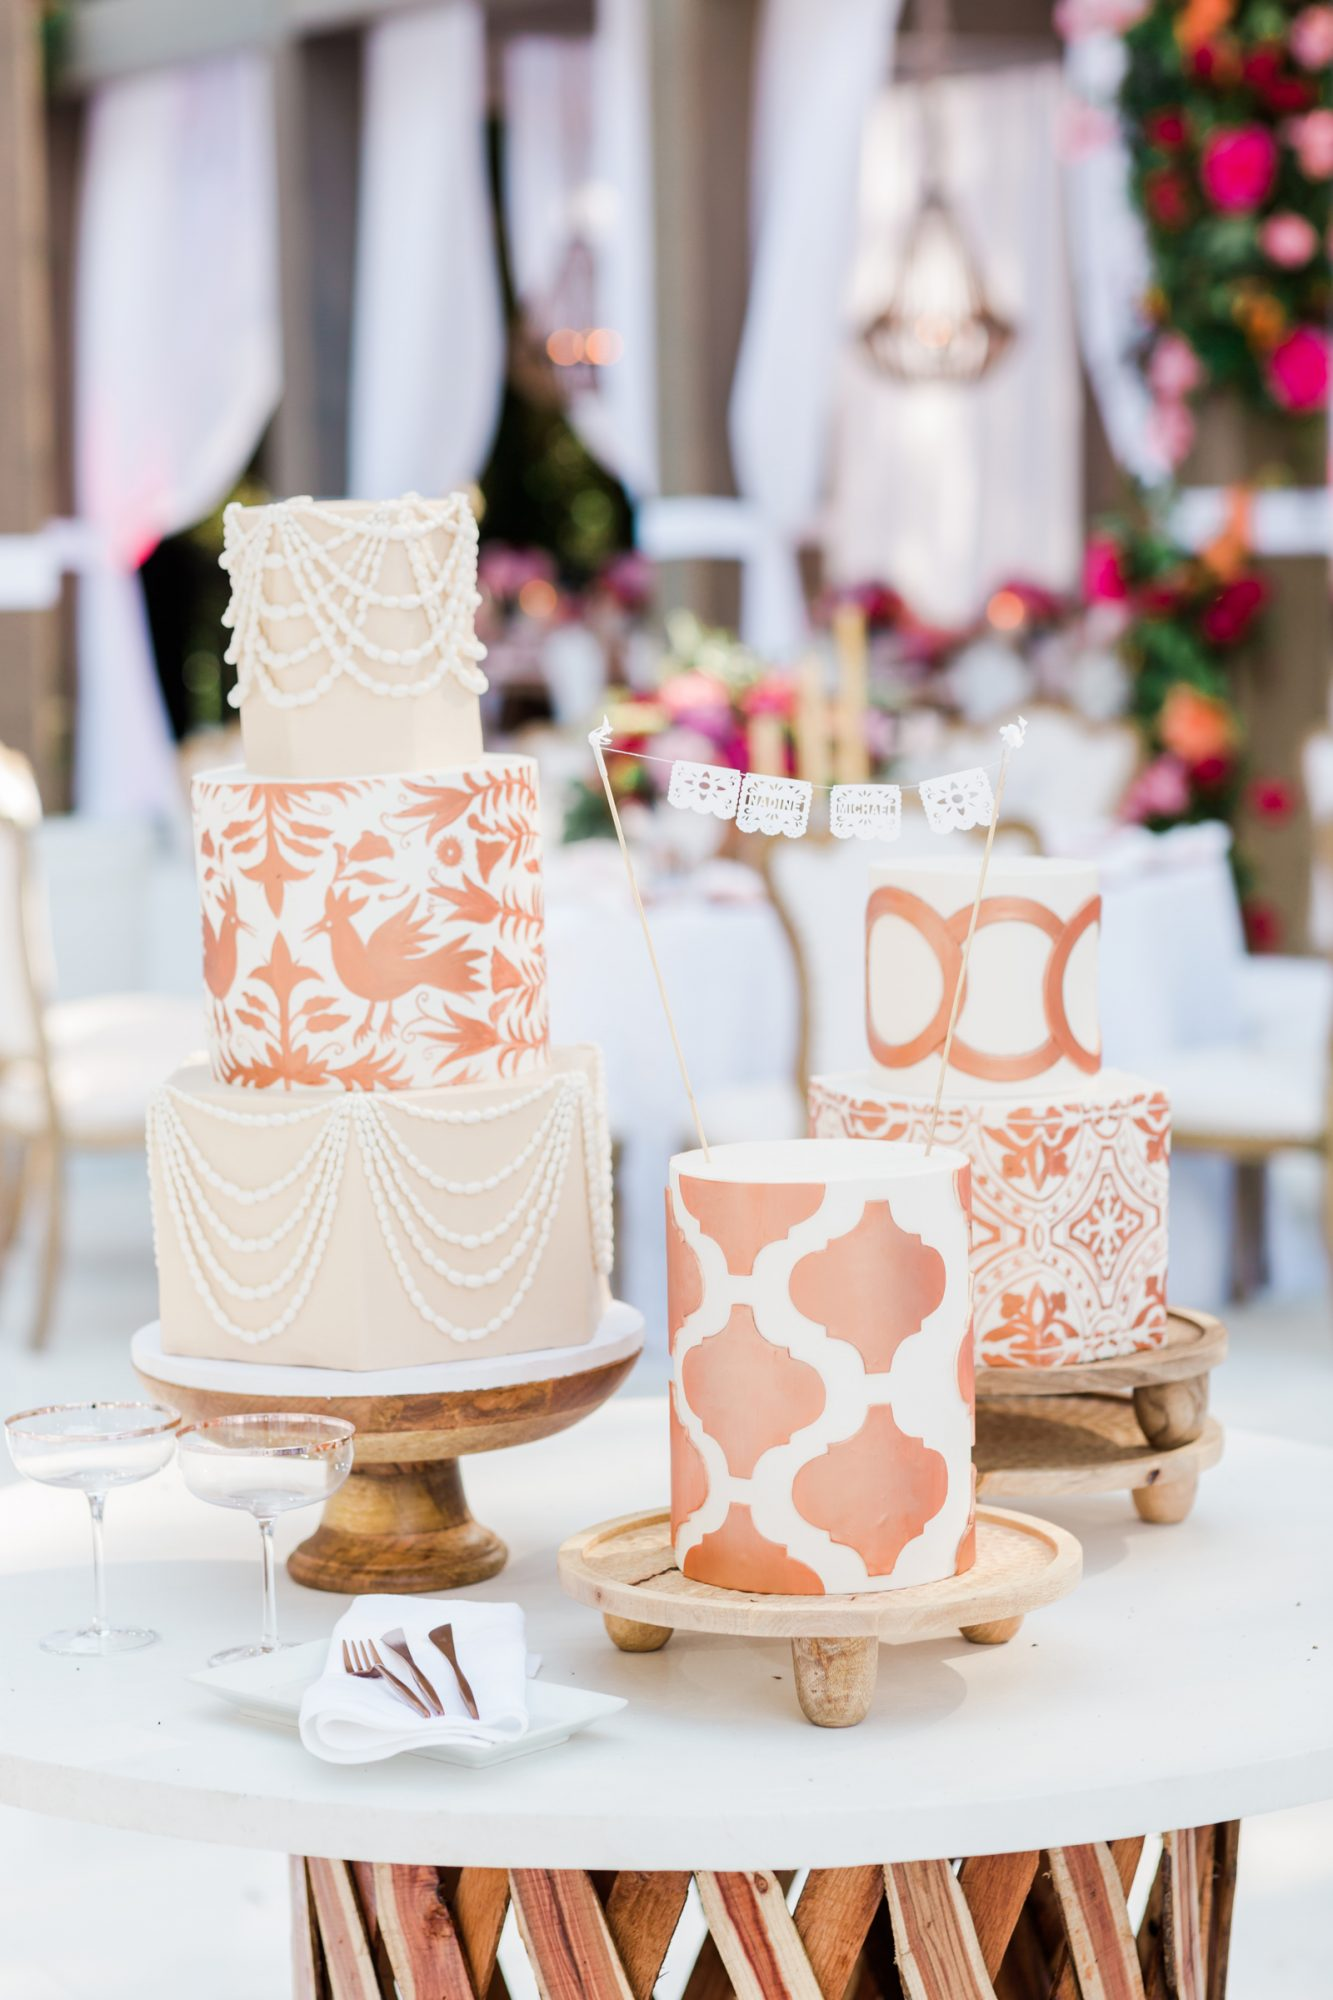 three wedding cakes with copper colored frosted designs